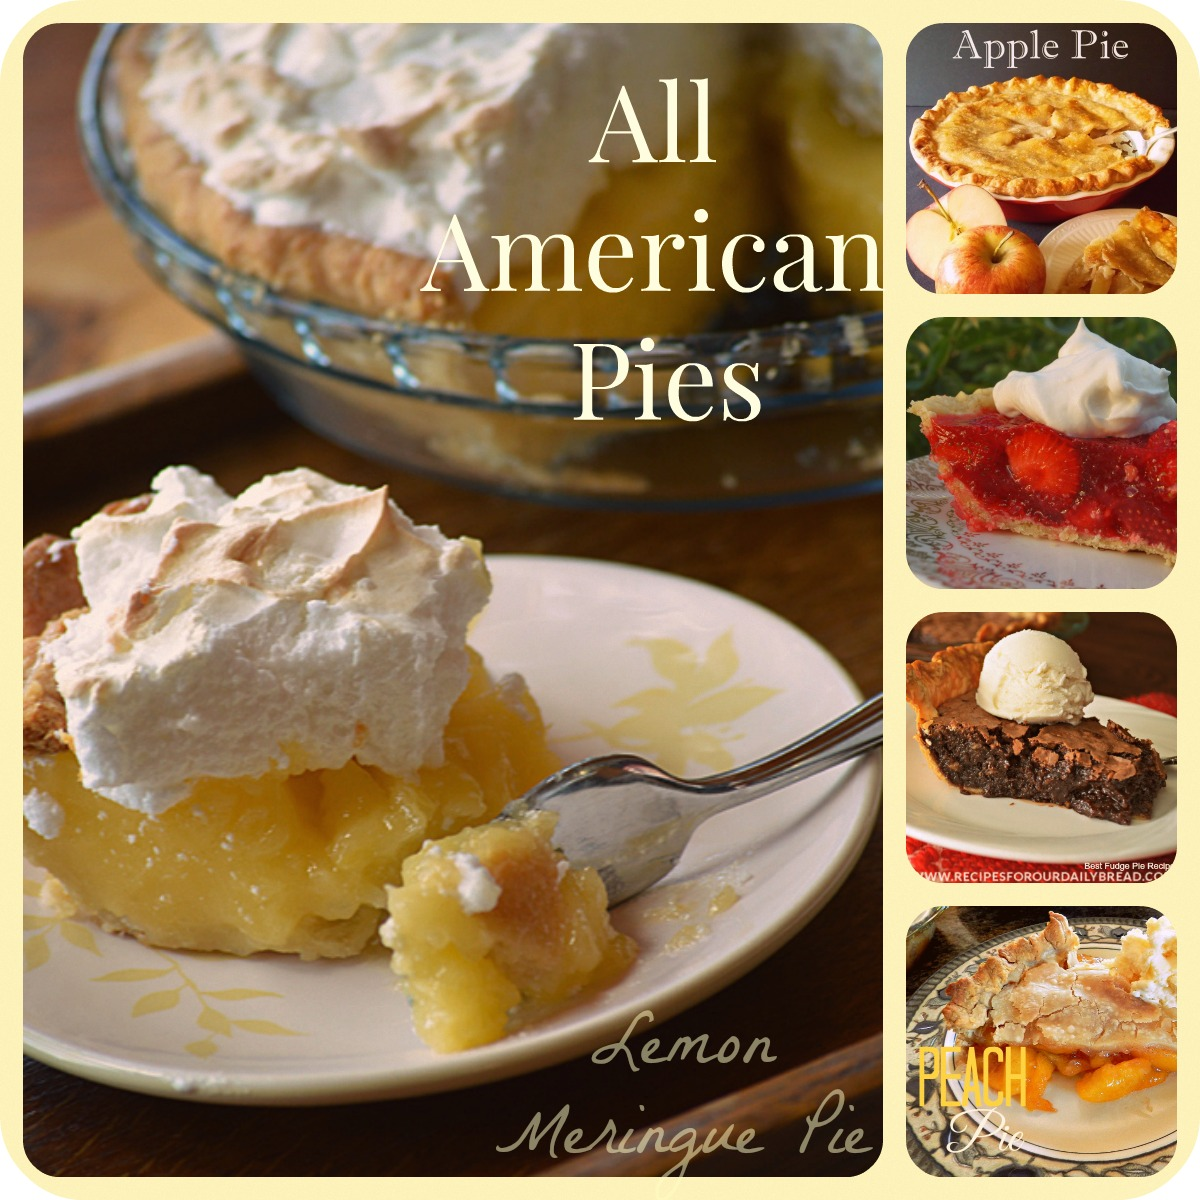 All American Pies Medley